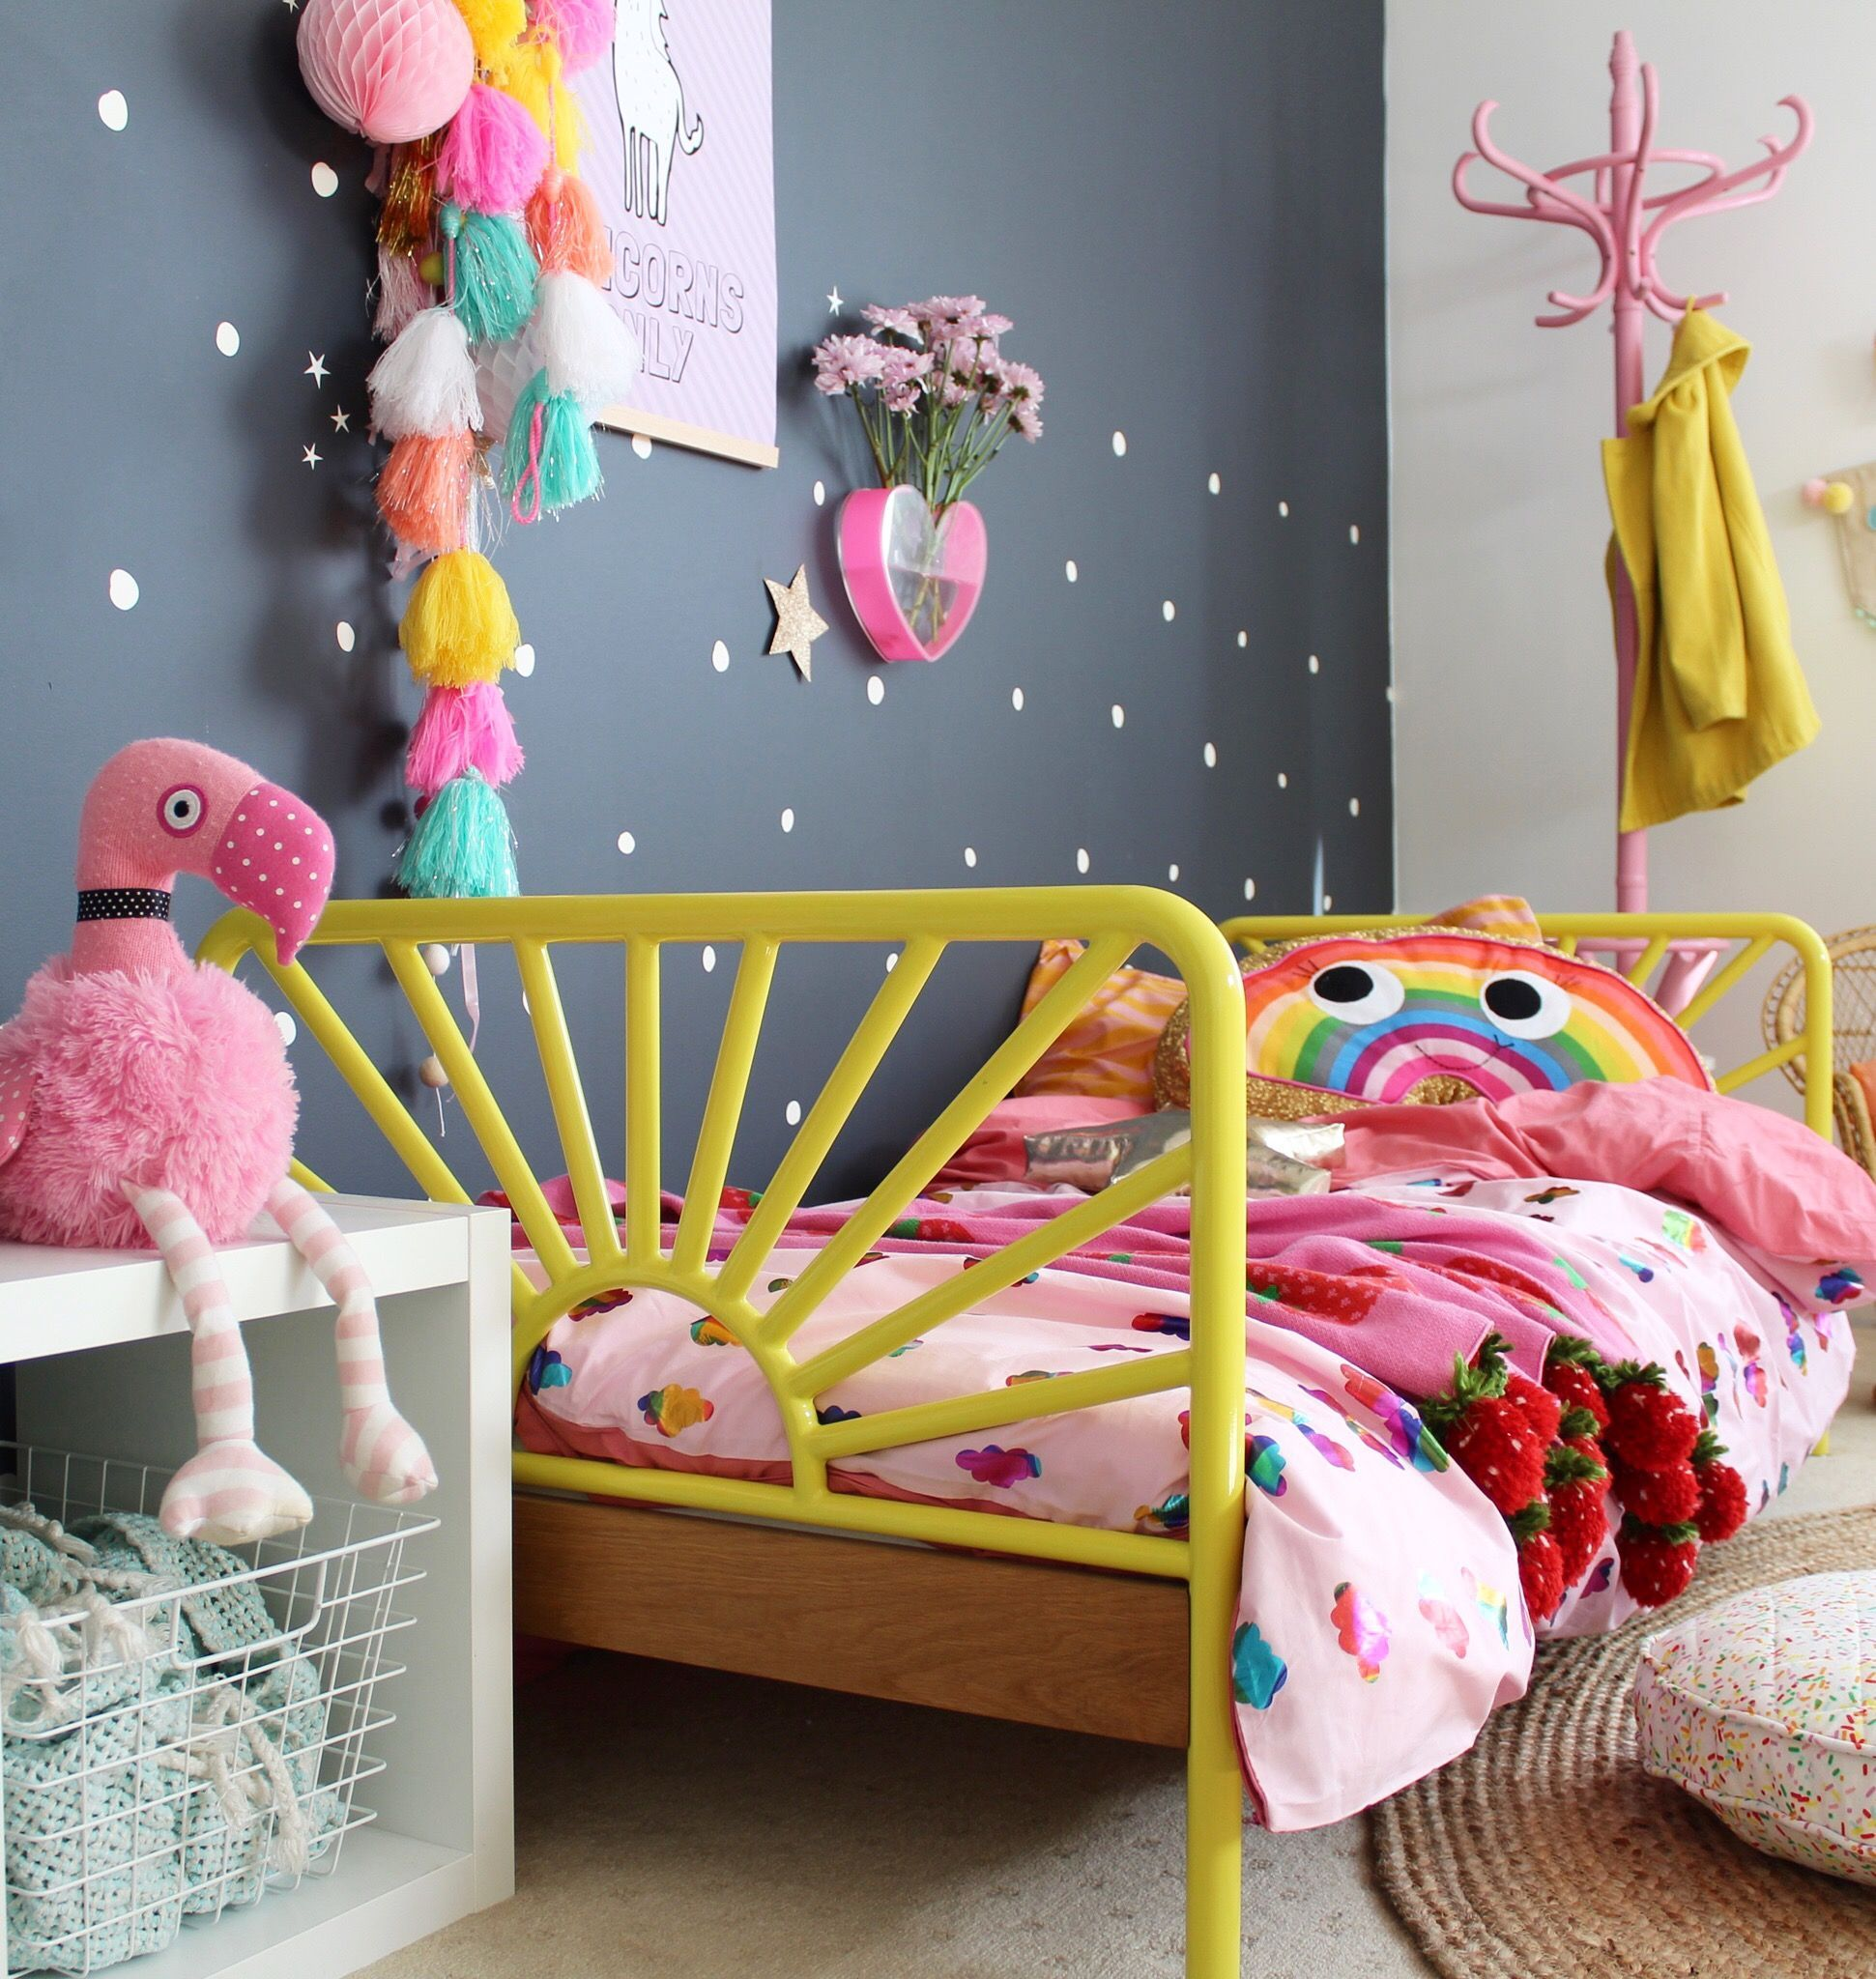 Rainbow Themed Room: Cloudy With A Chance Of Rainbows!